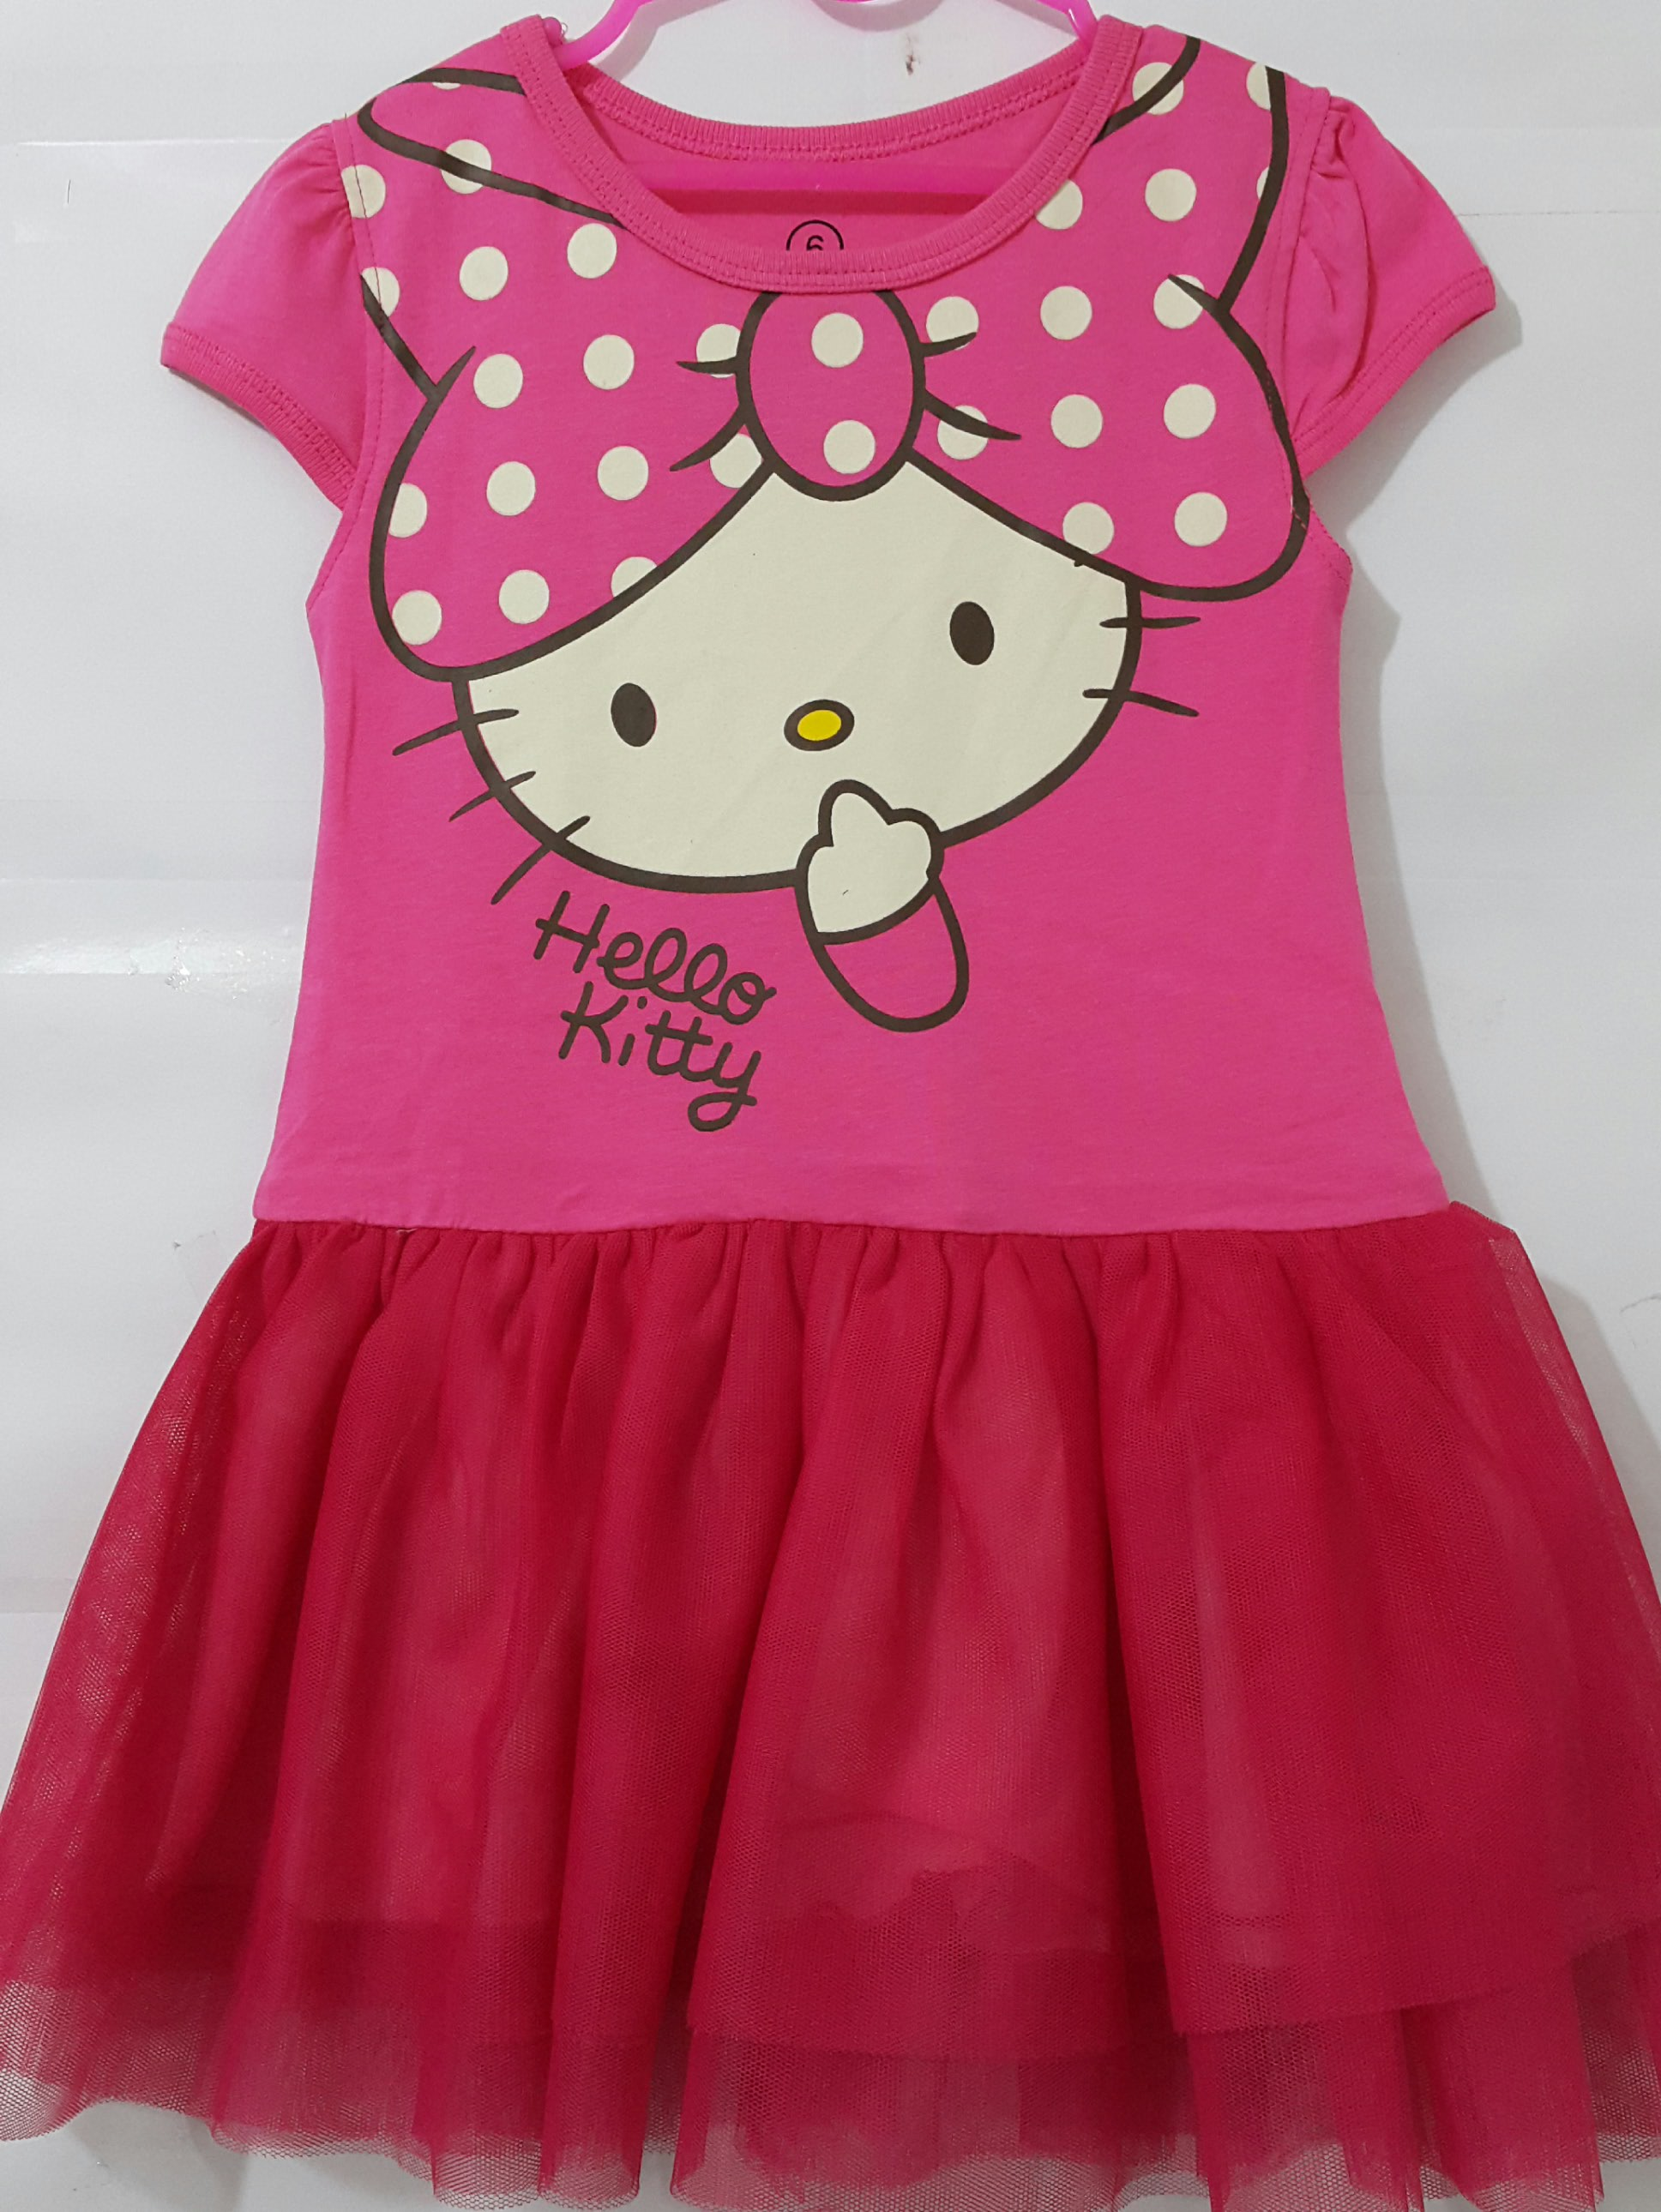 dress tutu Hello kitty pink